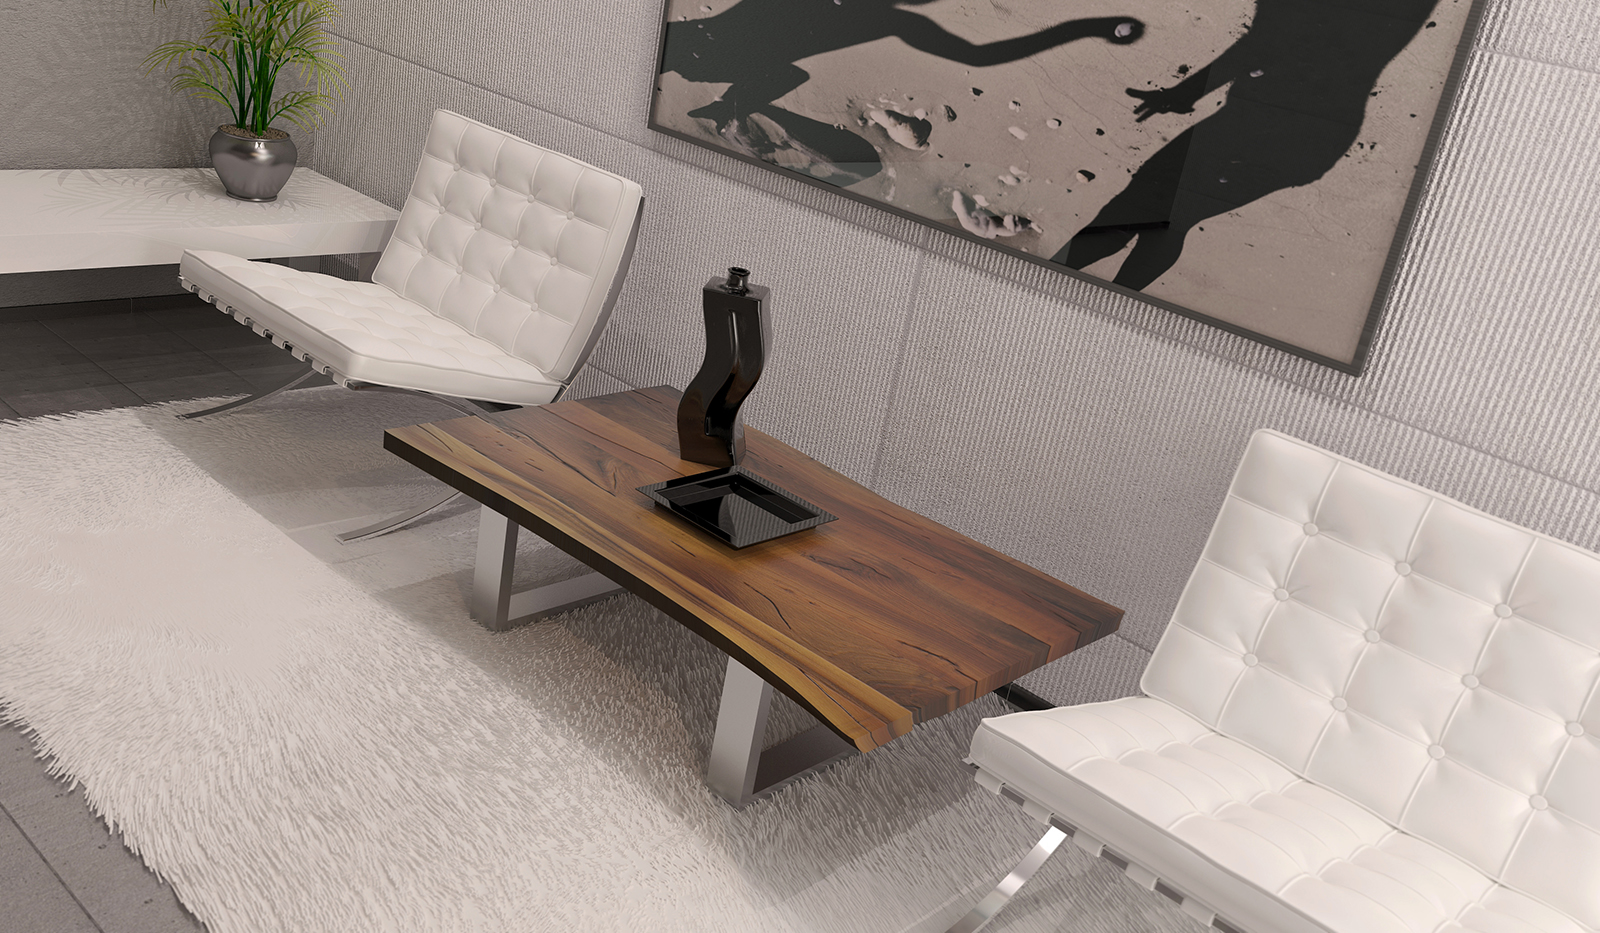 Milano.de_furniture_Little furniture table_02_Yianart.jpg